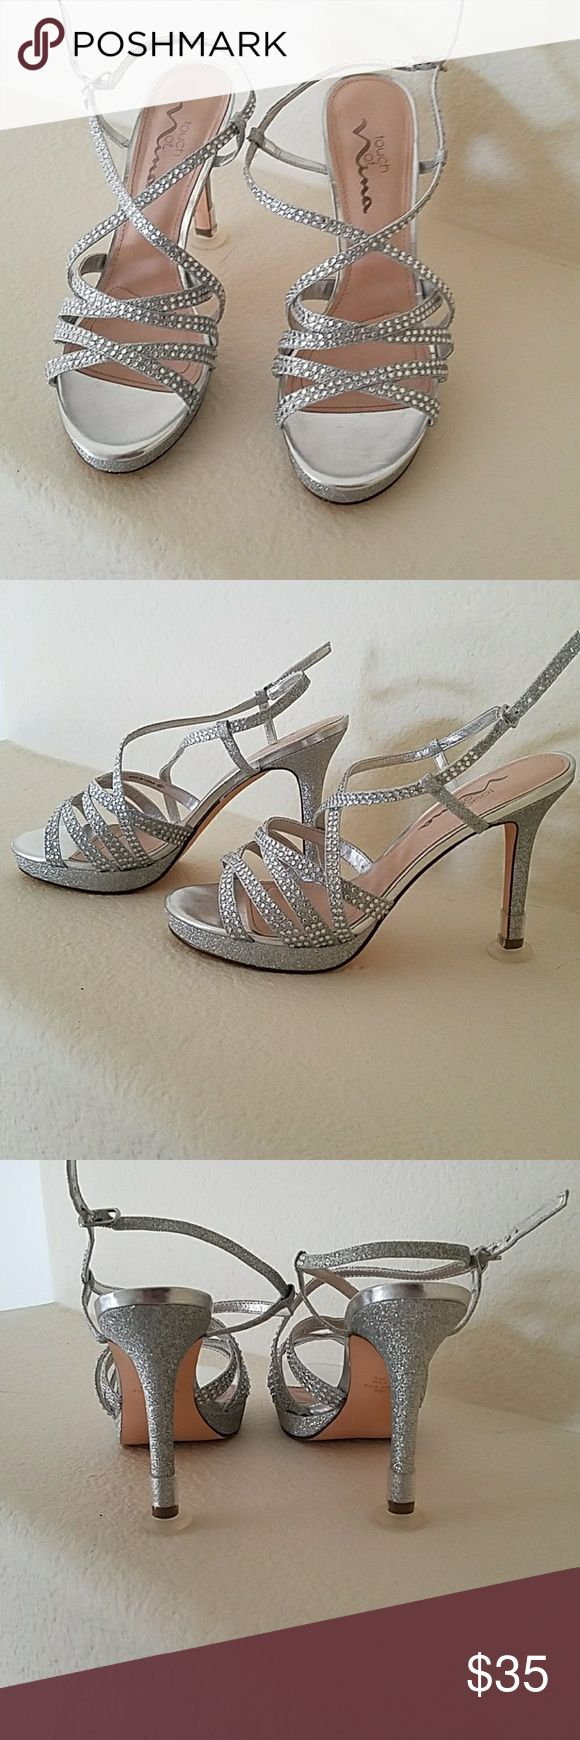 Sparkly Silver Heels Only worn once Heel stoppers are on, but I can take them off if you do not want them.  Used for bridesmaid shoes Perfect condition Touch of Nina Shoes Heels